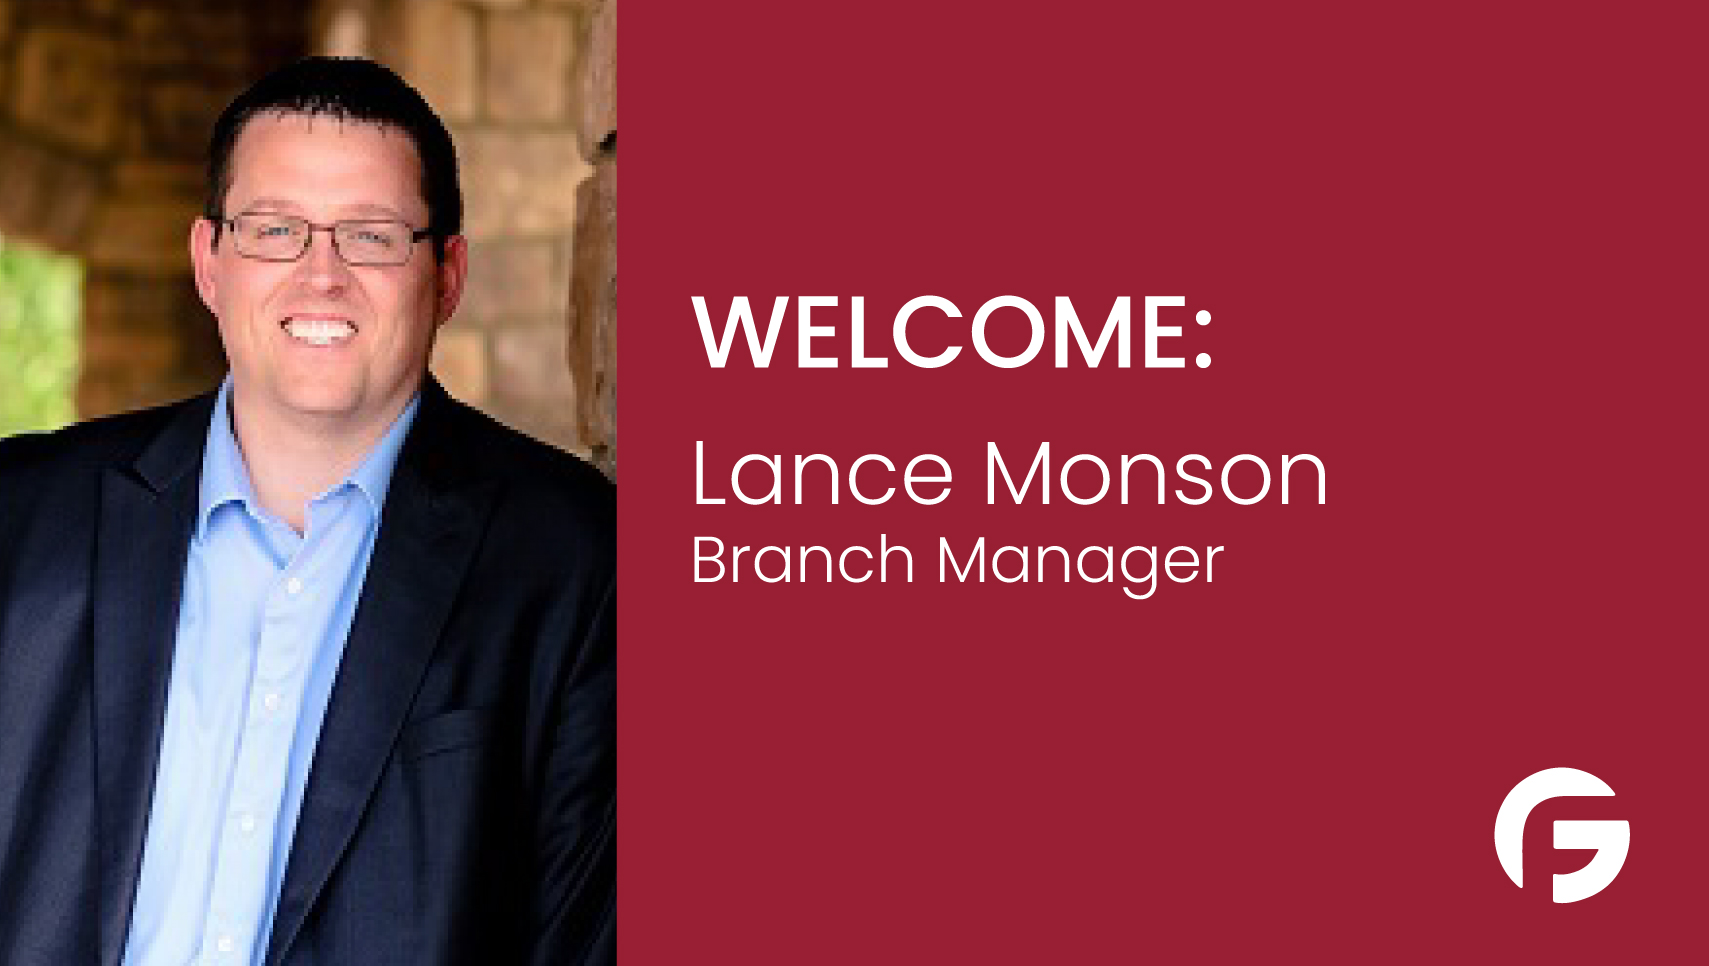 Lance Monson, Branch Manager, serving the state of Utah